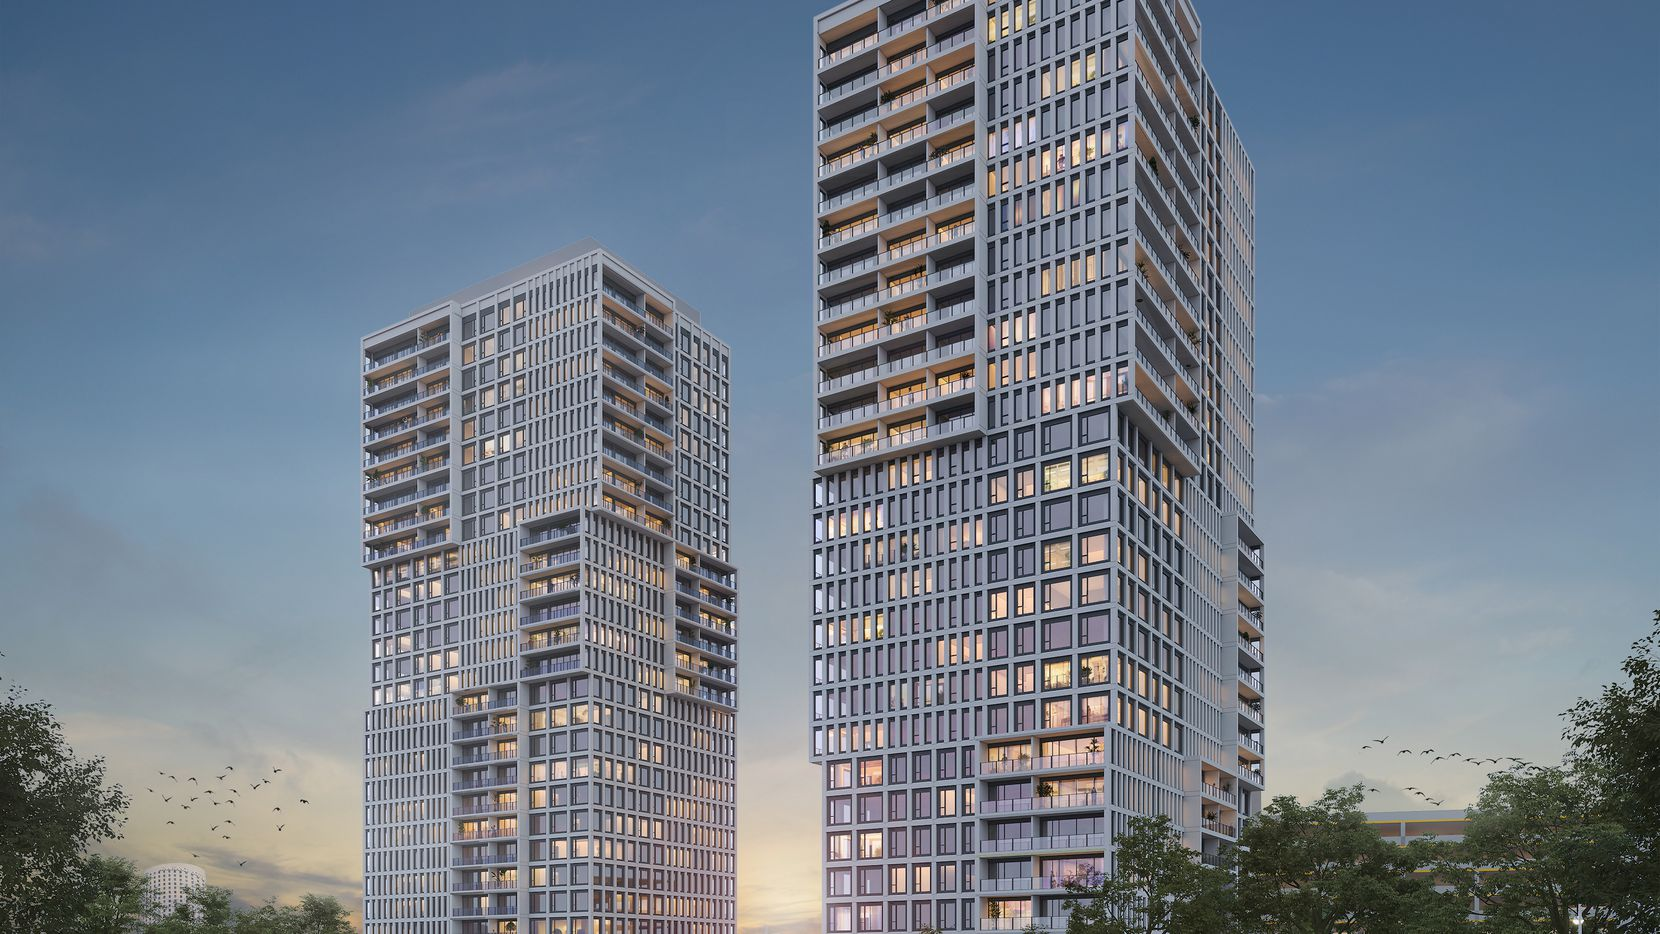 The 27-story tower that has started construction is one of three planned for the site near Stemmons Freeway.